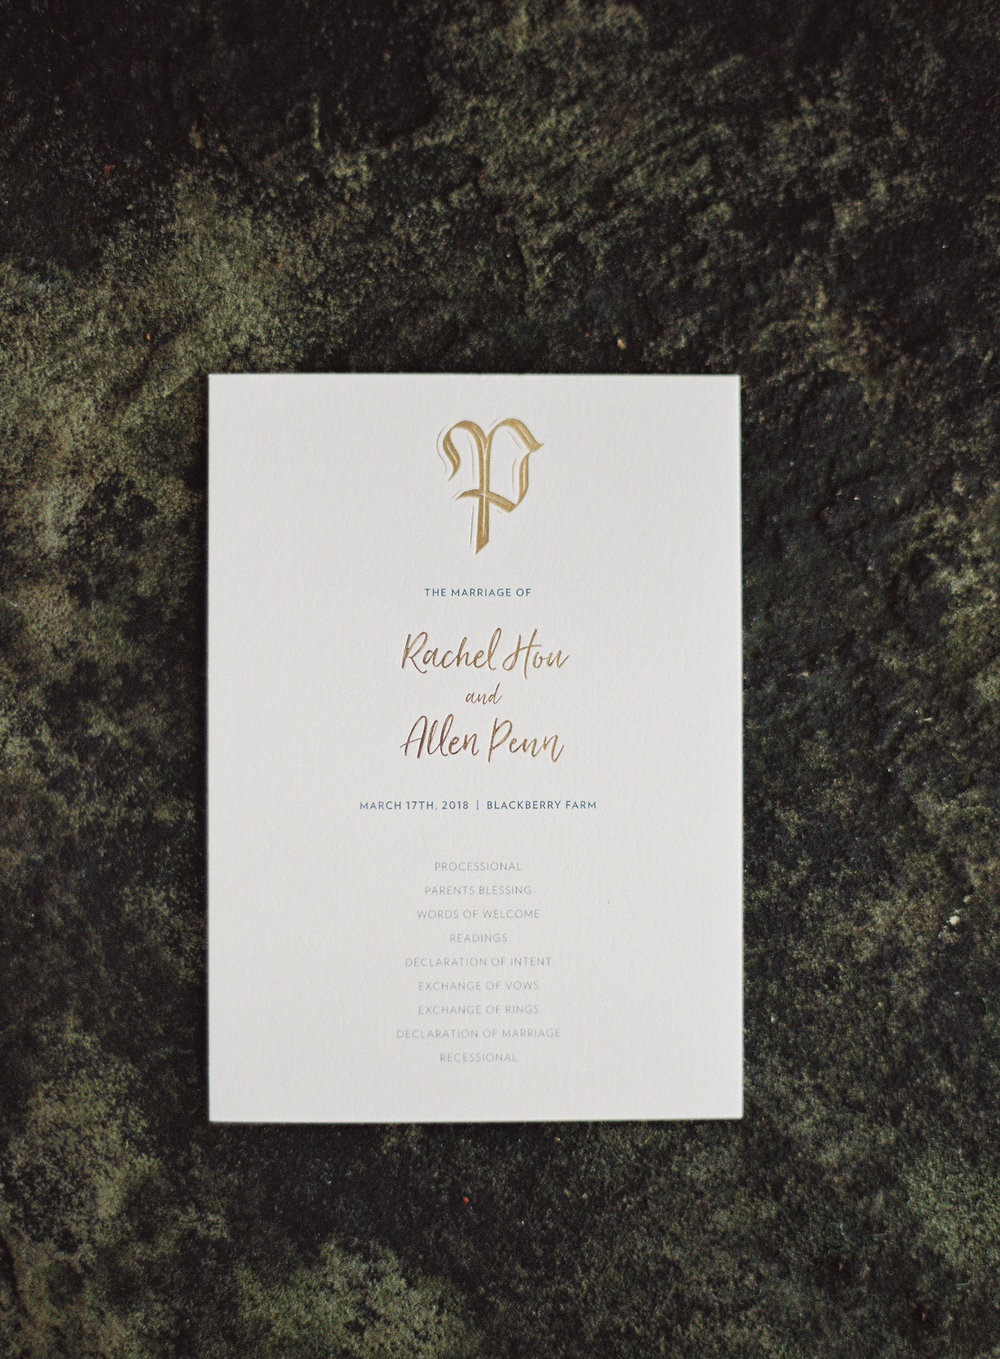 Blackberry Farm Wedding Ceremony Program: monogram and names in rose gold foil with grey ink on thick cotton paper | designed by Chavelli www.chavelli.com